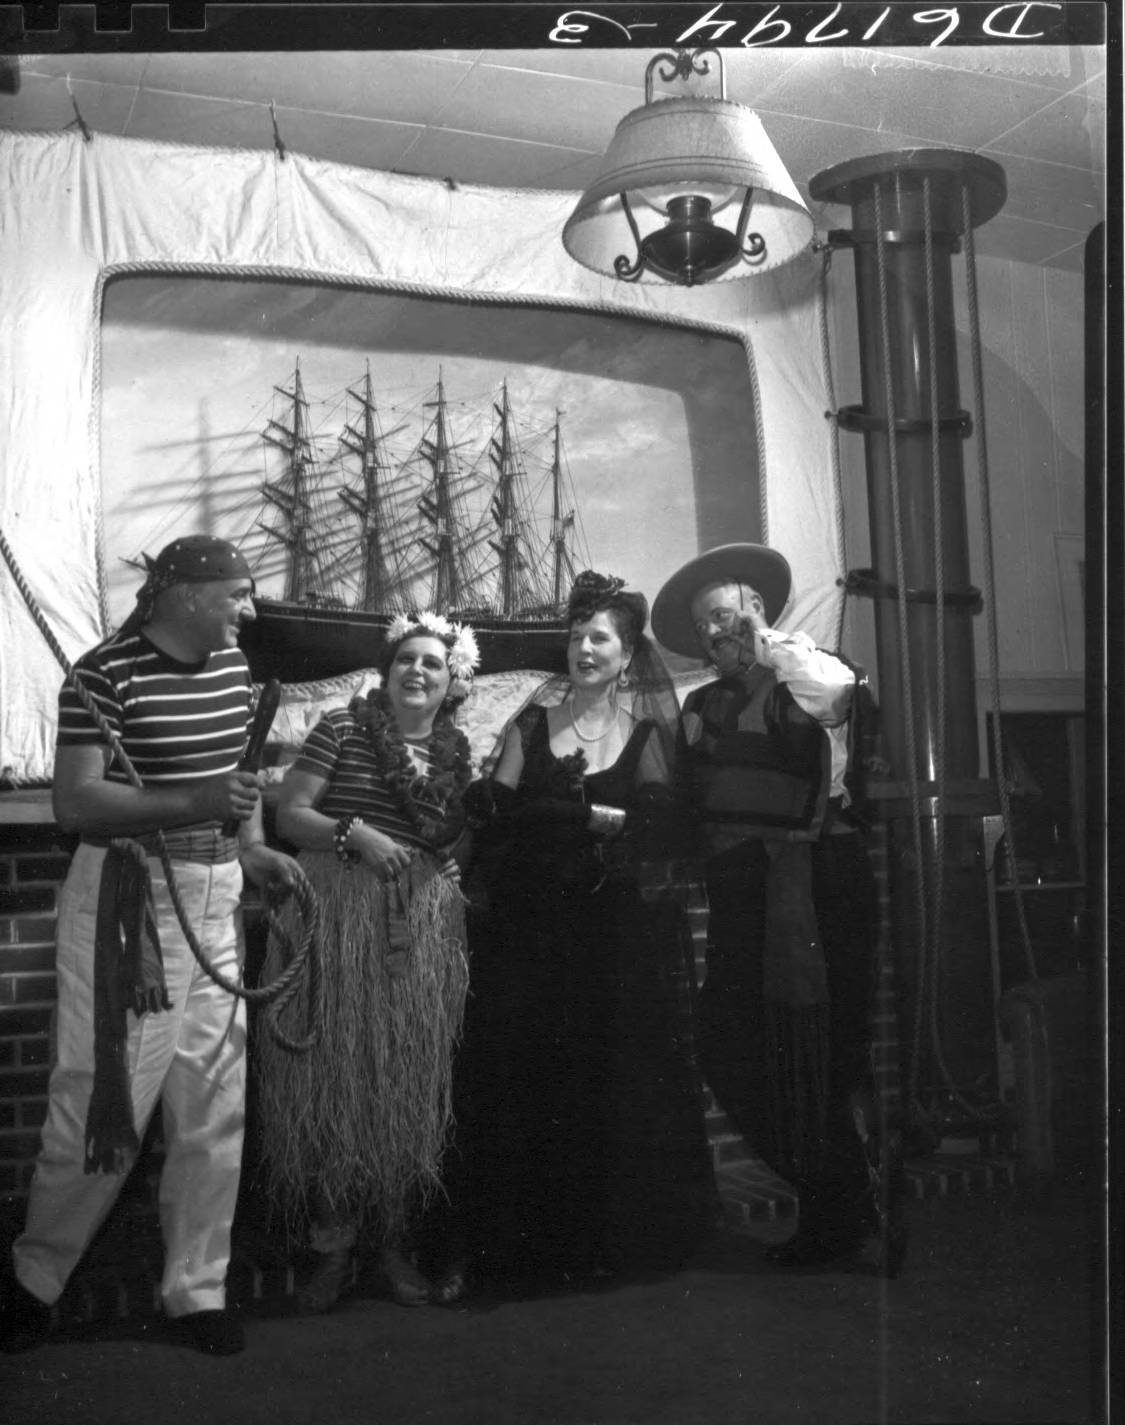 Groups in costumes for Tacoma Yacht Club Halloween Party held on October 27, 1951. Pictured above in front of a ship model are: pirate William Ostruske with Mrs. Ostruske as a hula dancer and Mr. and Mrs. Frank Heffernan as a courtly Spanish couple.